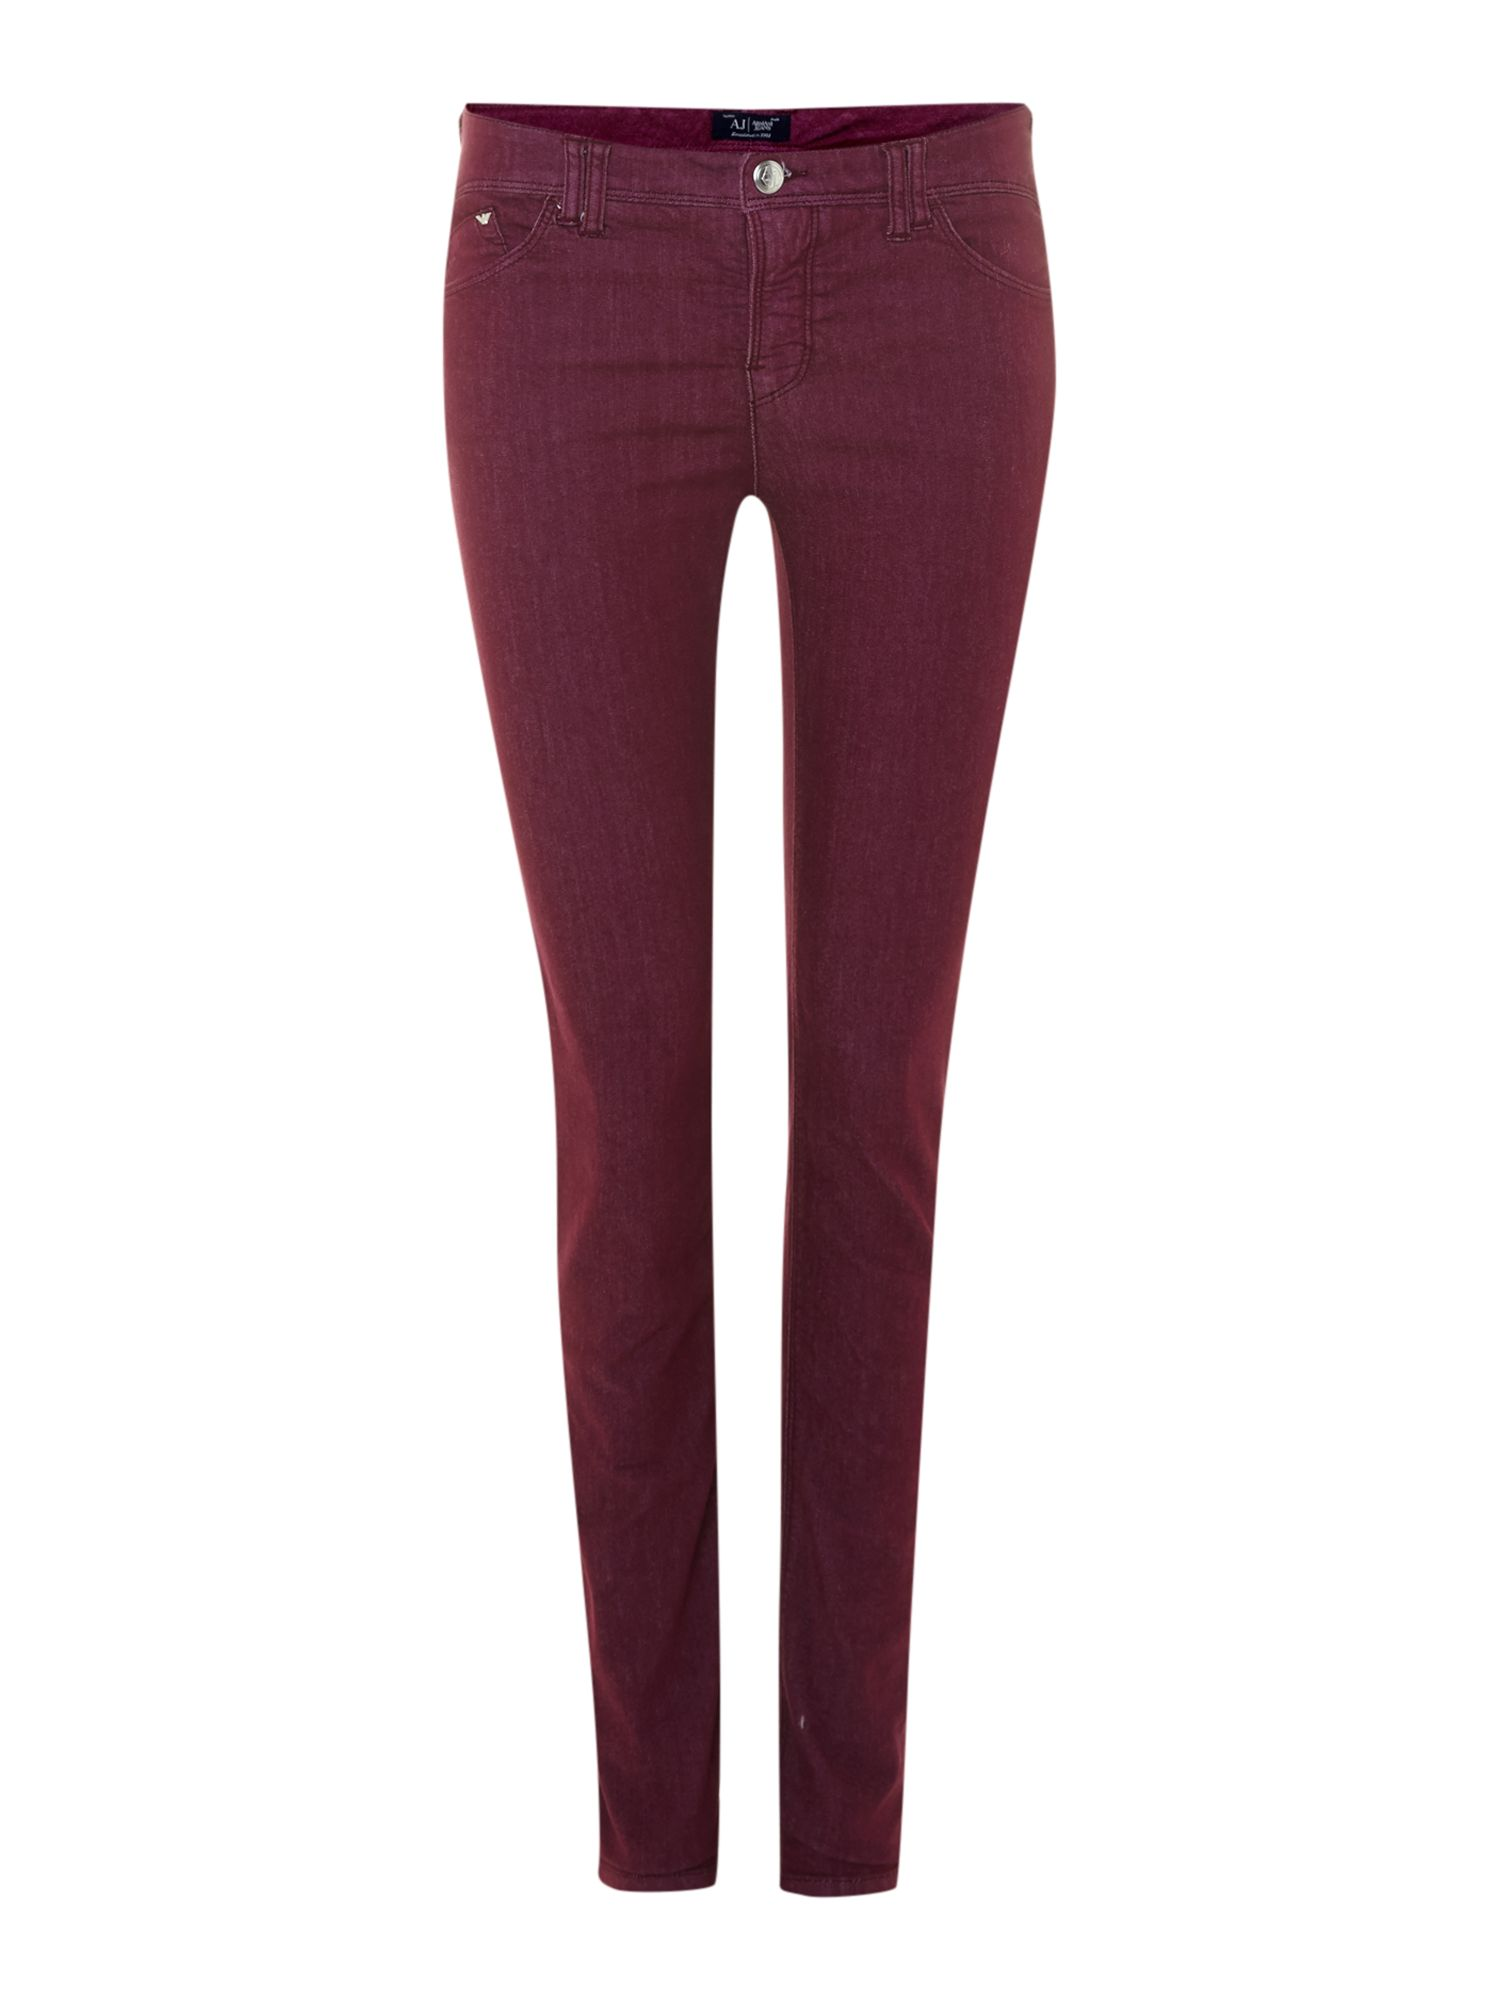 J28 mid-rise super skinny coloured jeans